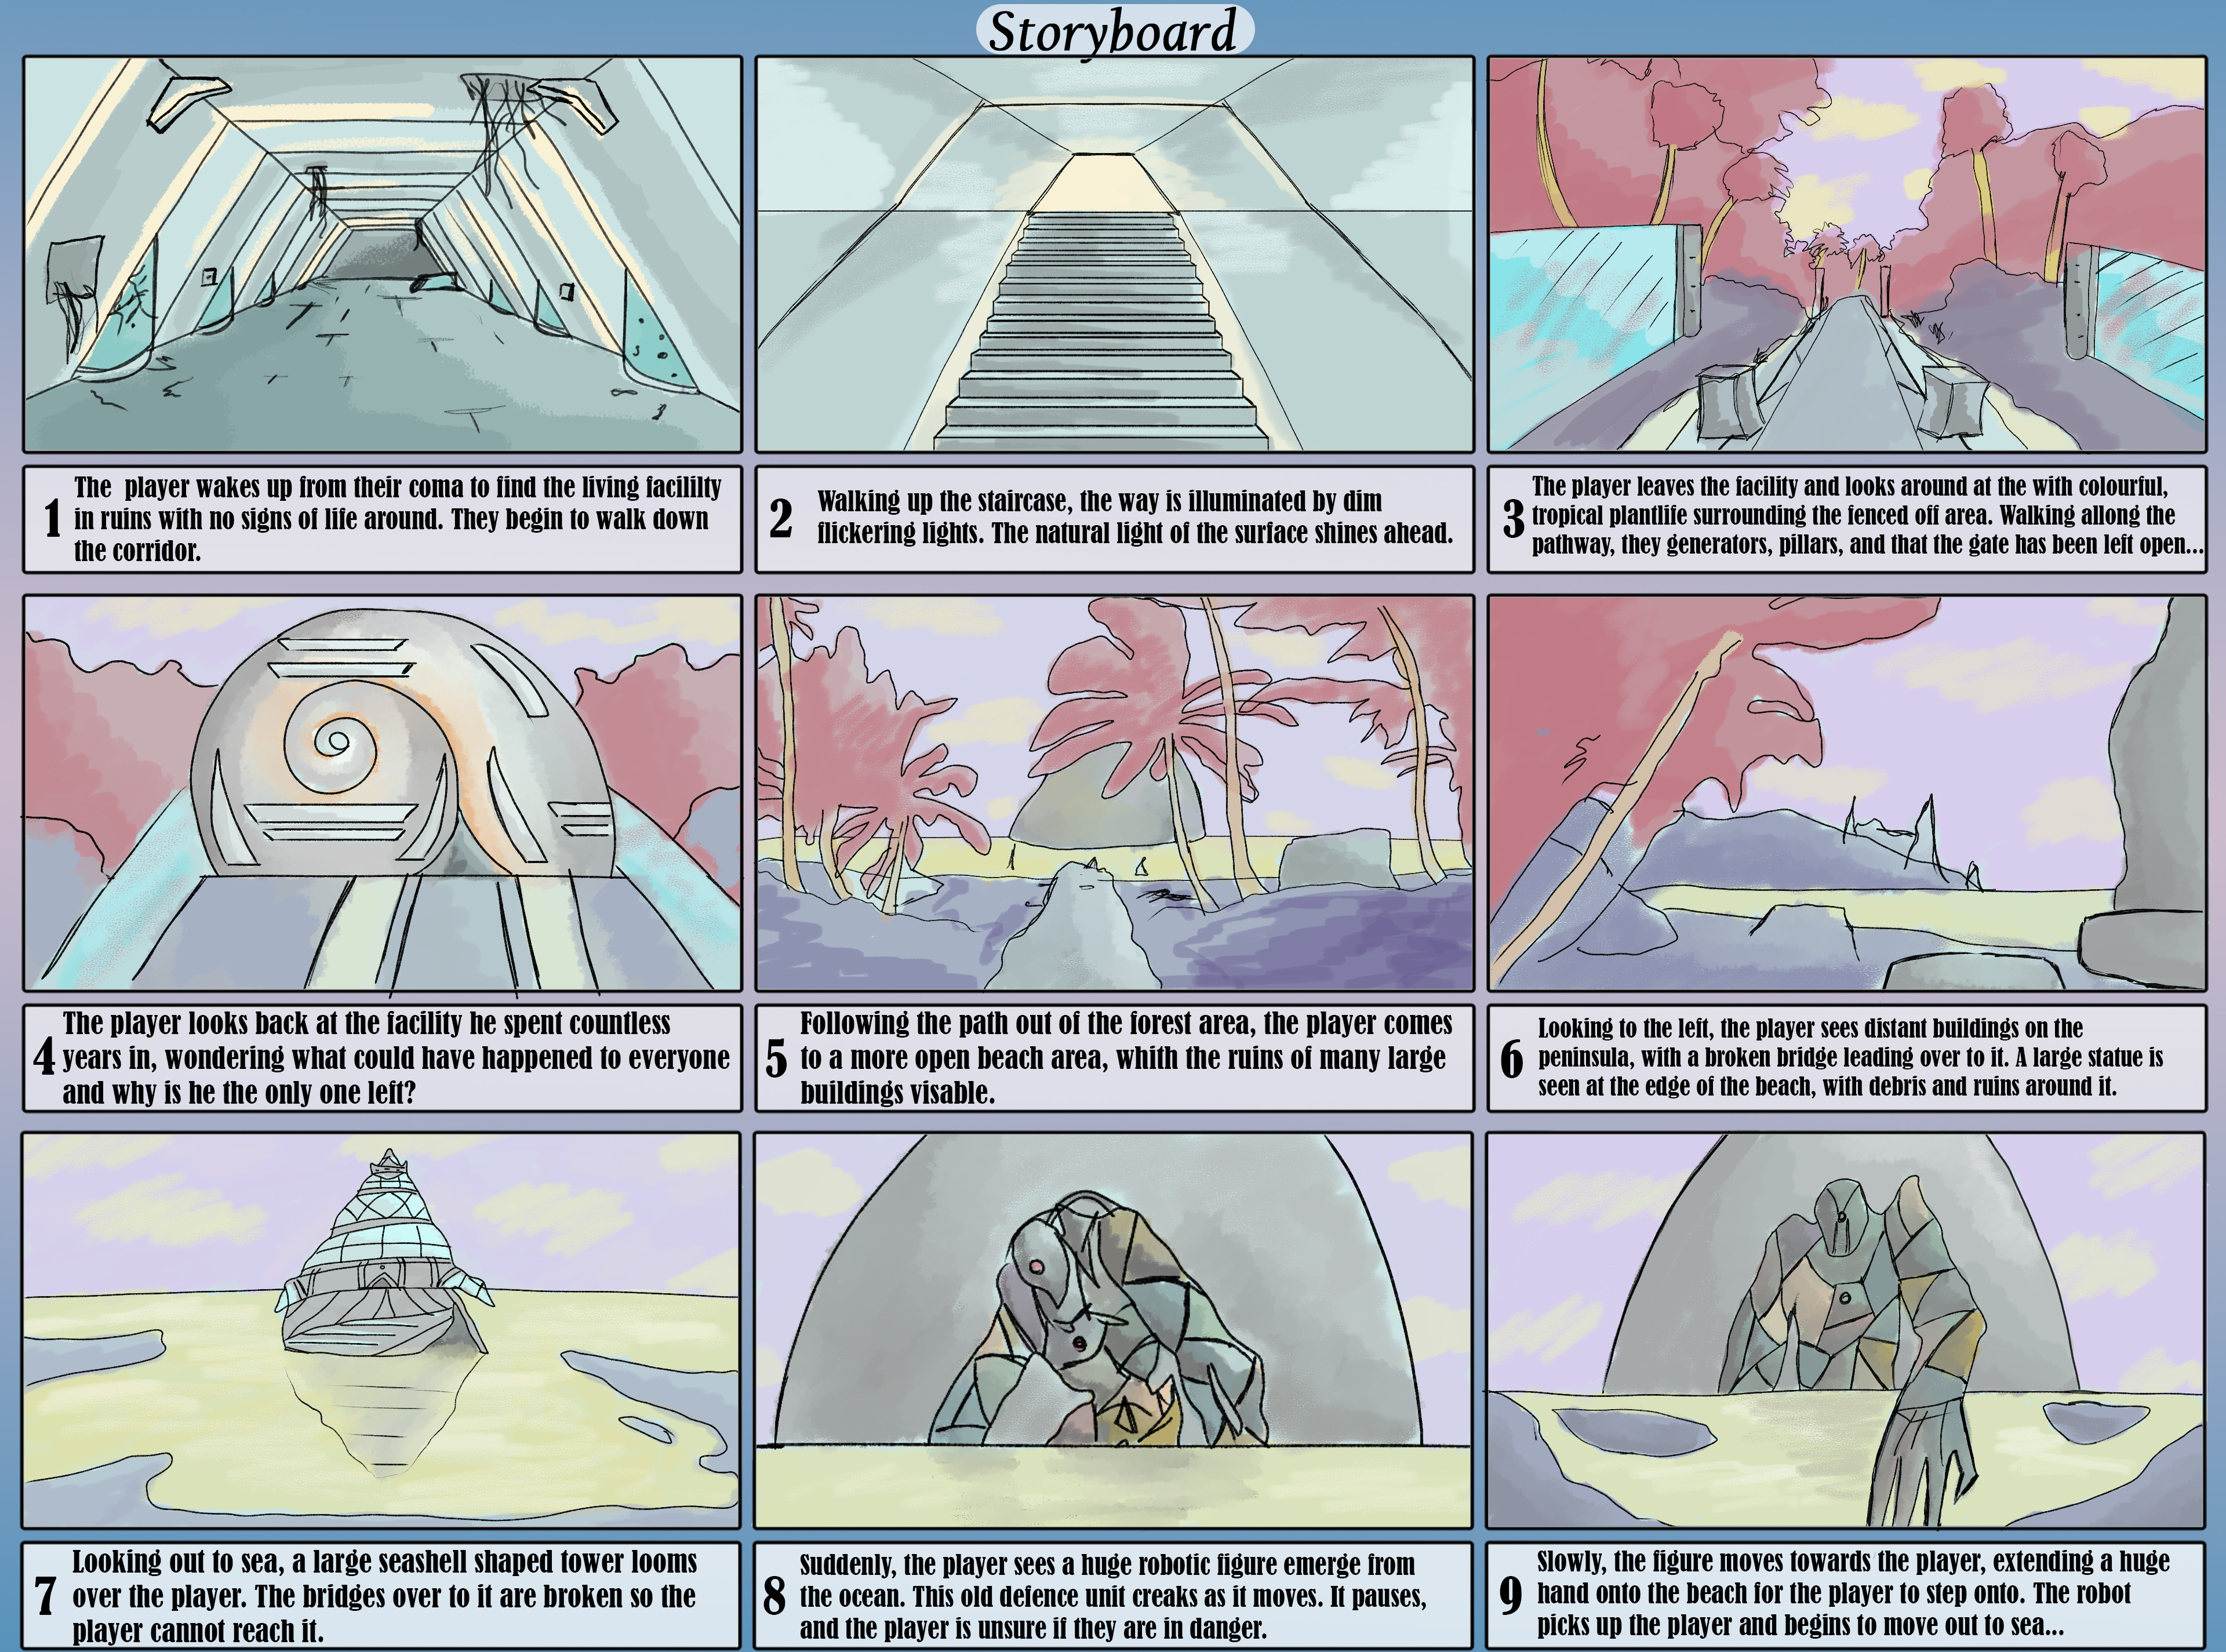 A short storyboard I created to plan out the narrative of my game level.